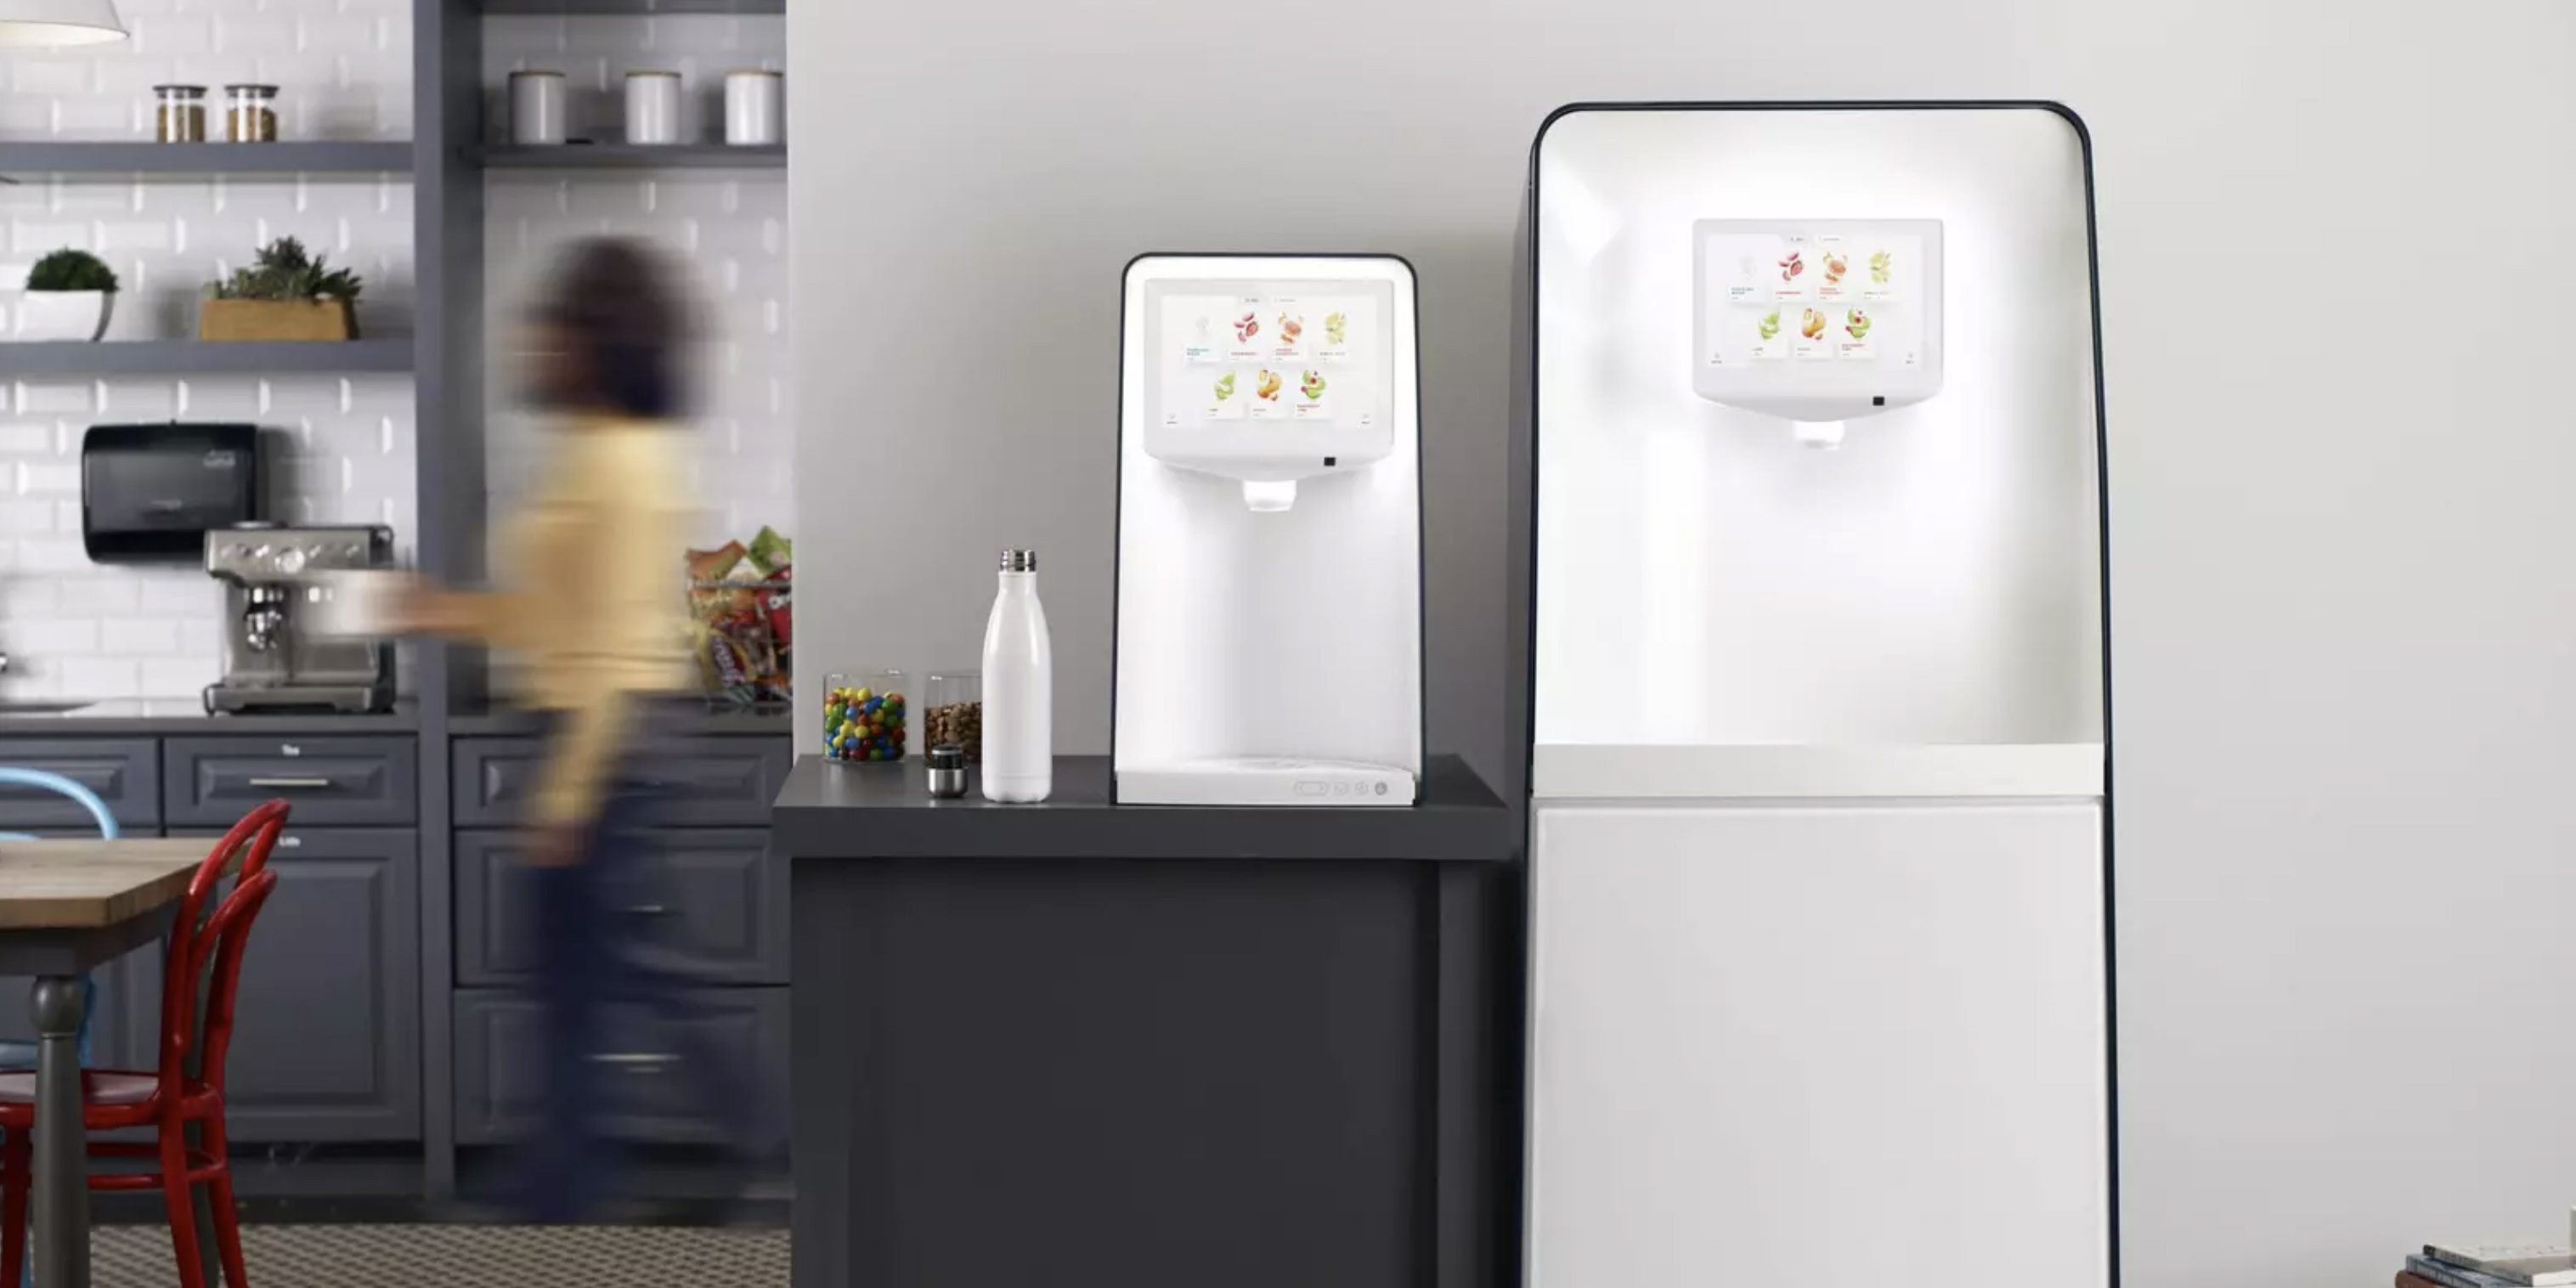 Pepsi's SodaStream acquisition delivers new tech-infused hydration station slated for June